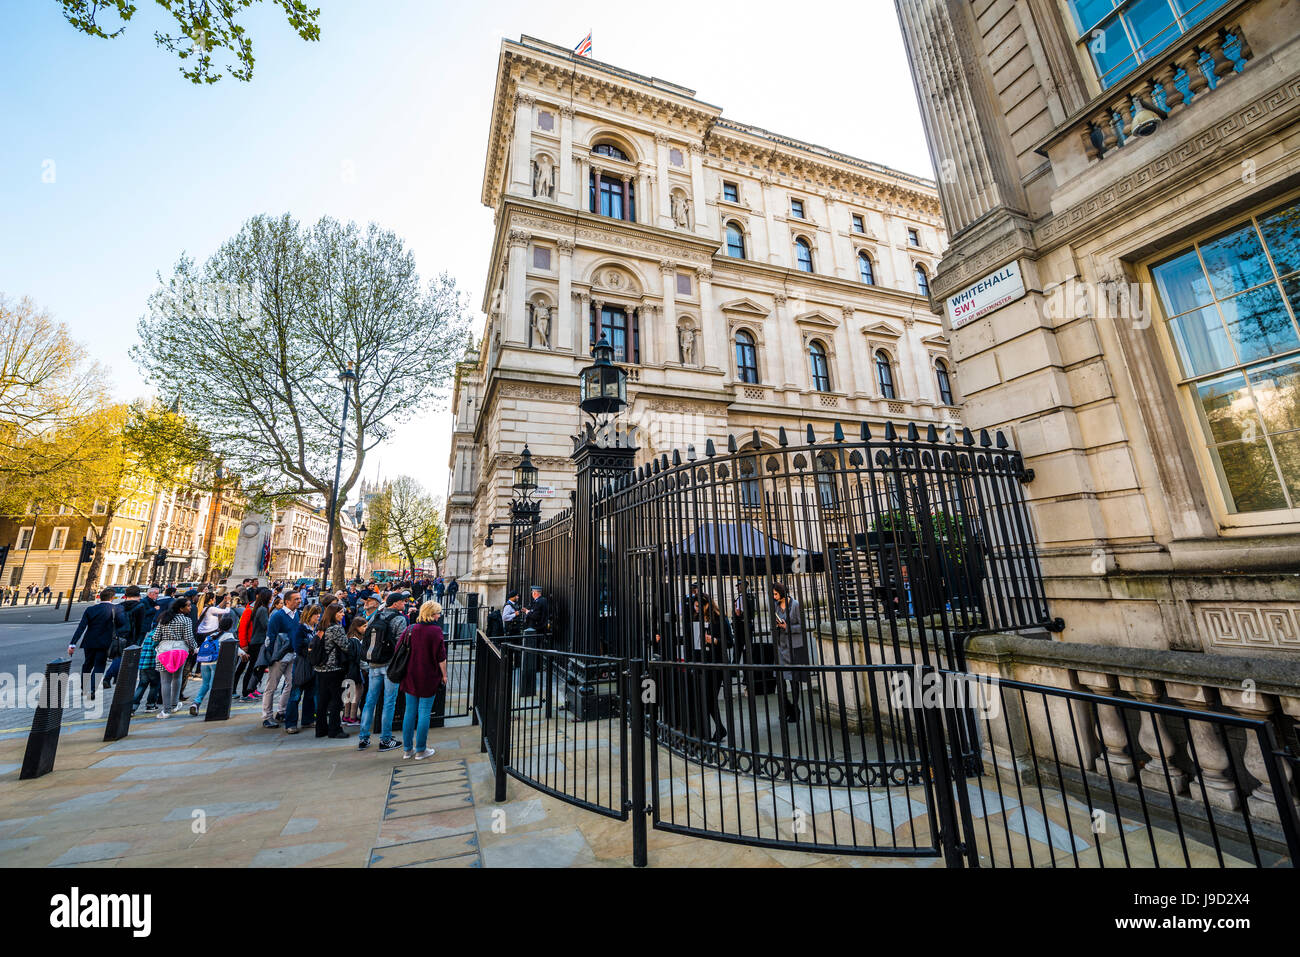 Barricade, police and tourists at the entrance to Downing Street, government district, London, England, United Kingdom - Stock Image